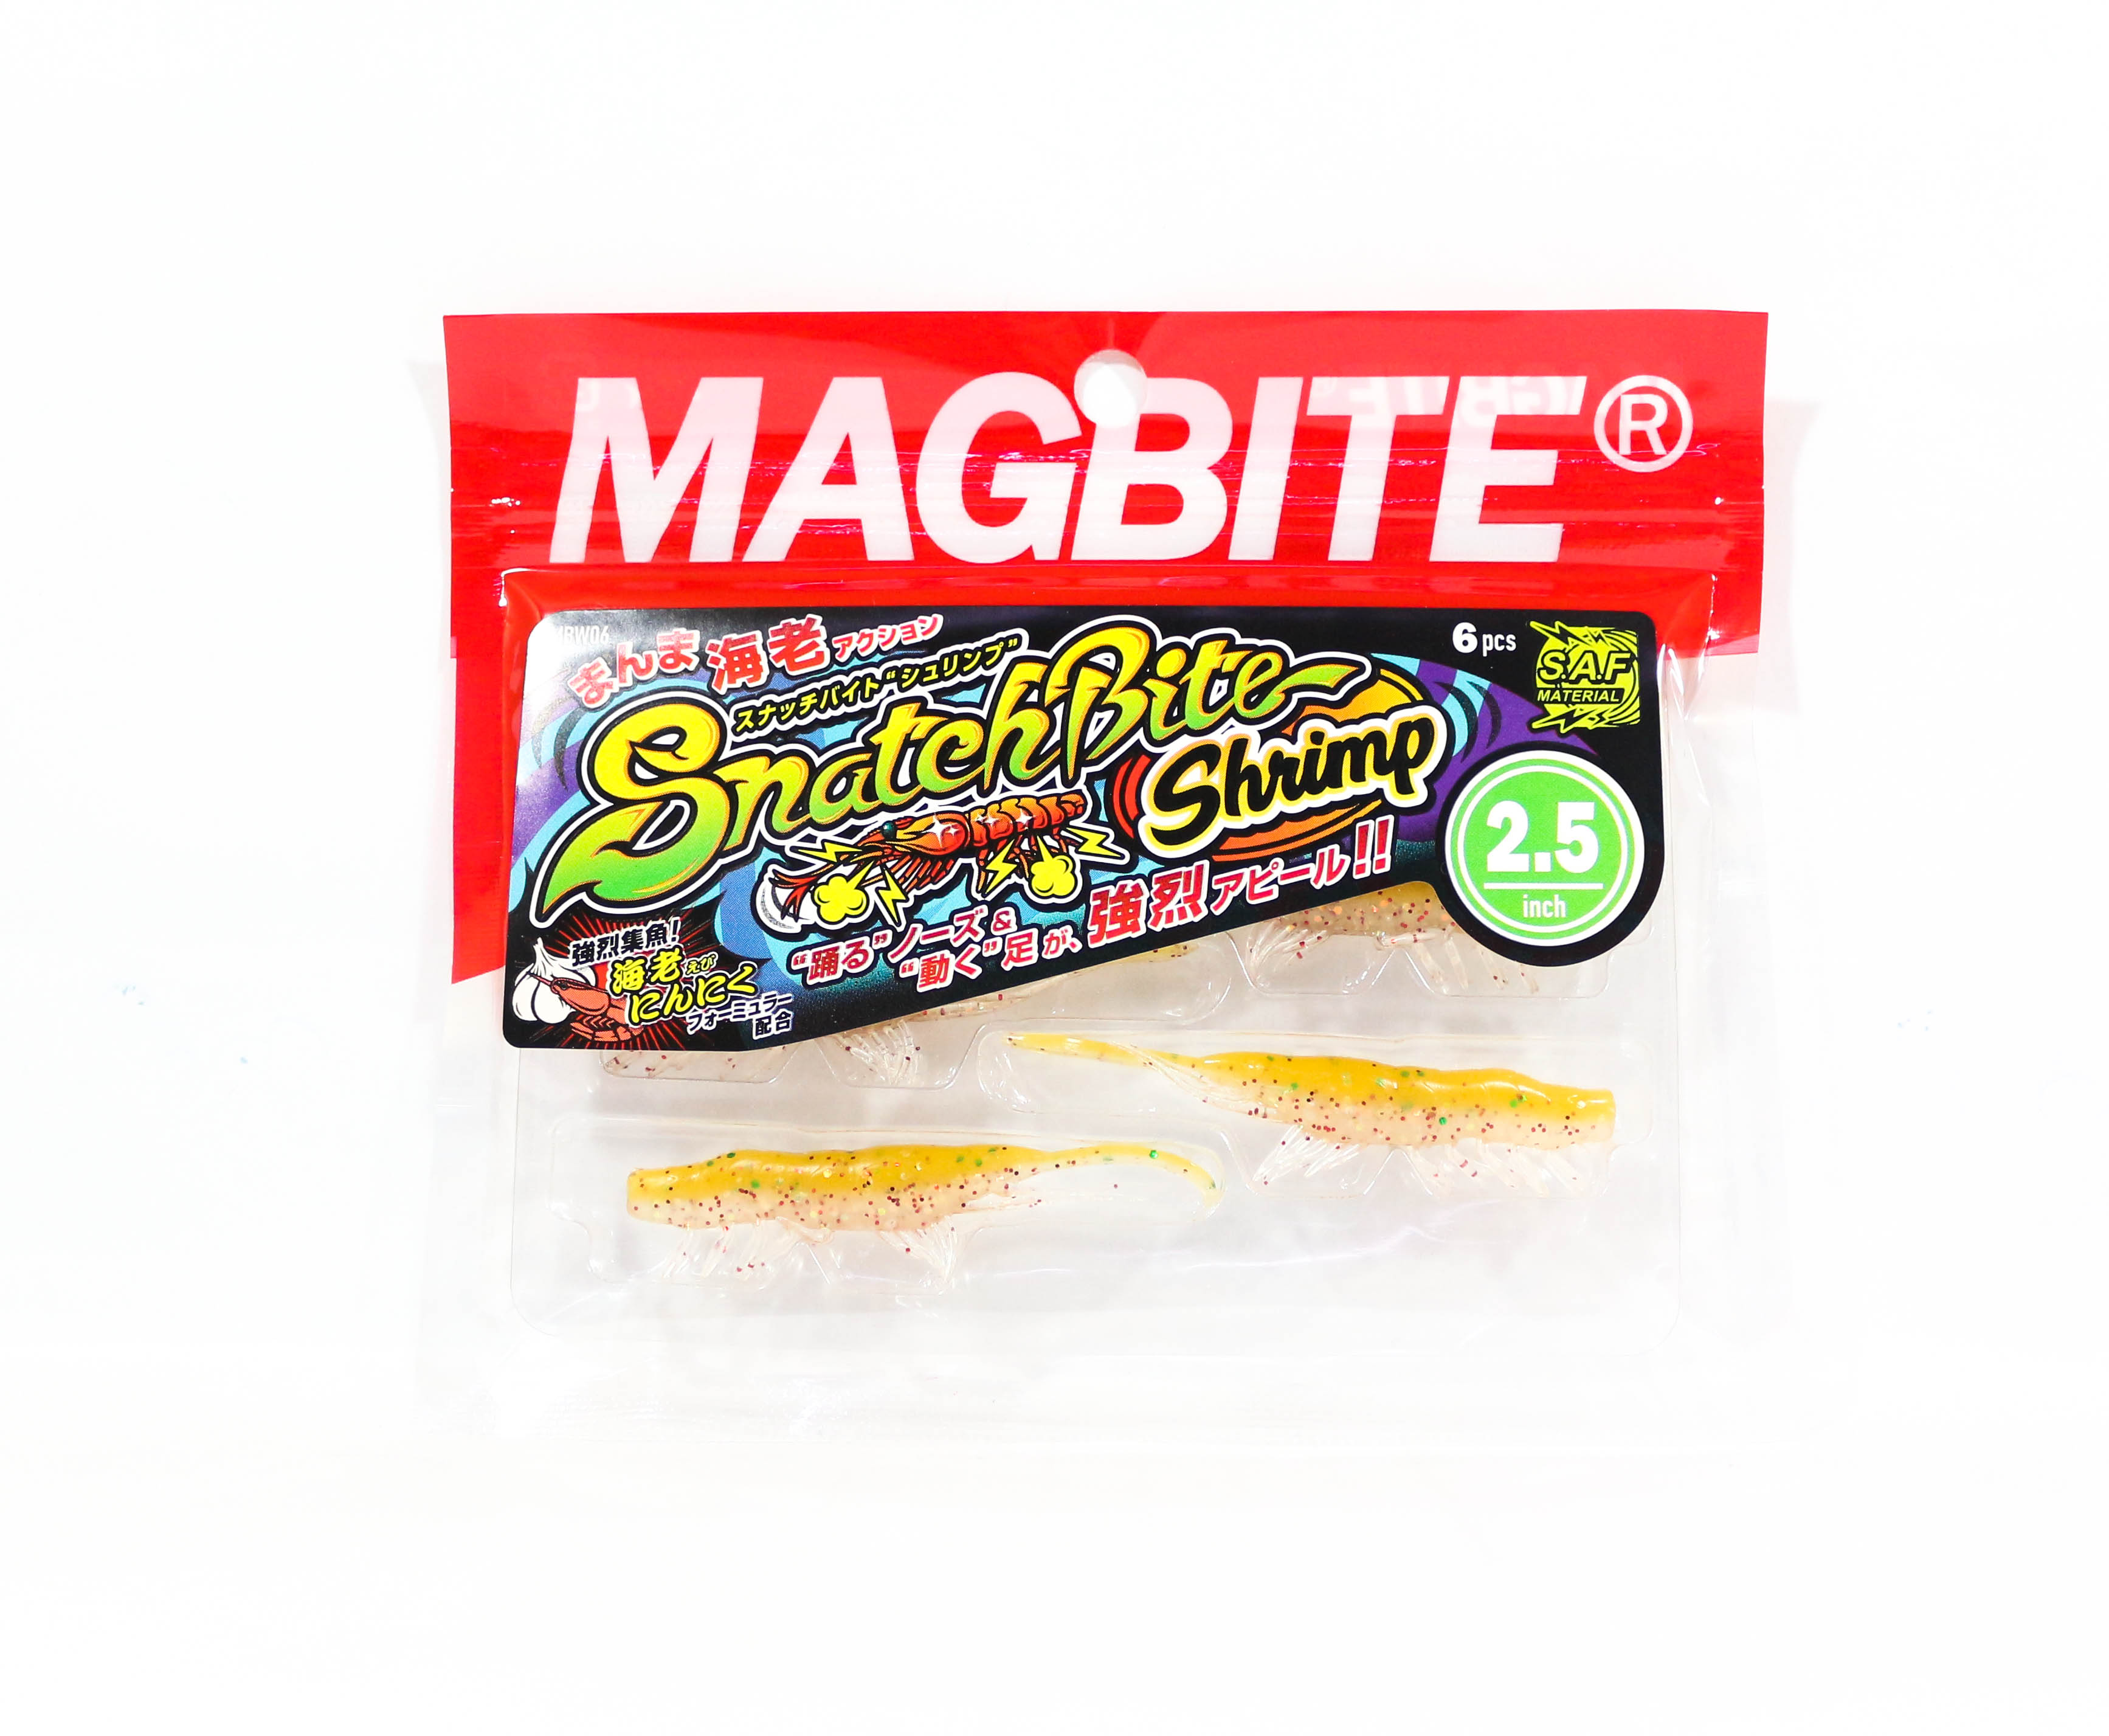 Harimitsu Mag Bite Snatch Shrimp 2.5 Inch 6 per pack 04 (6522)